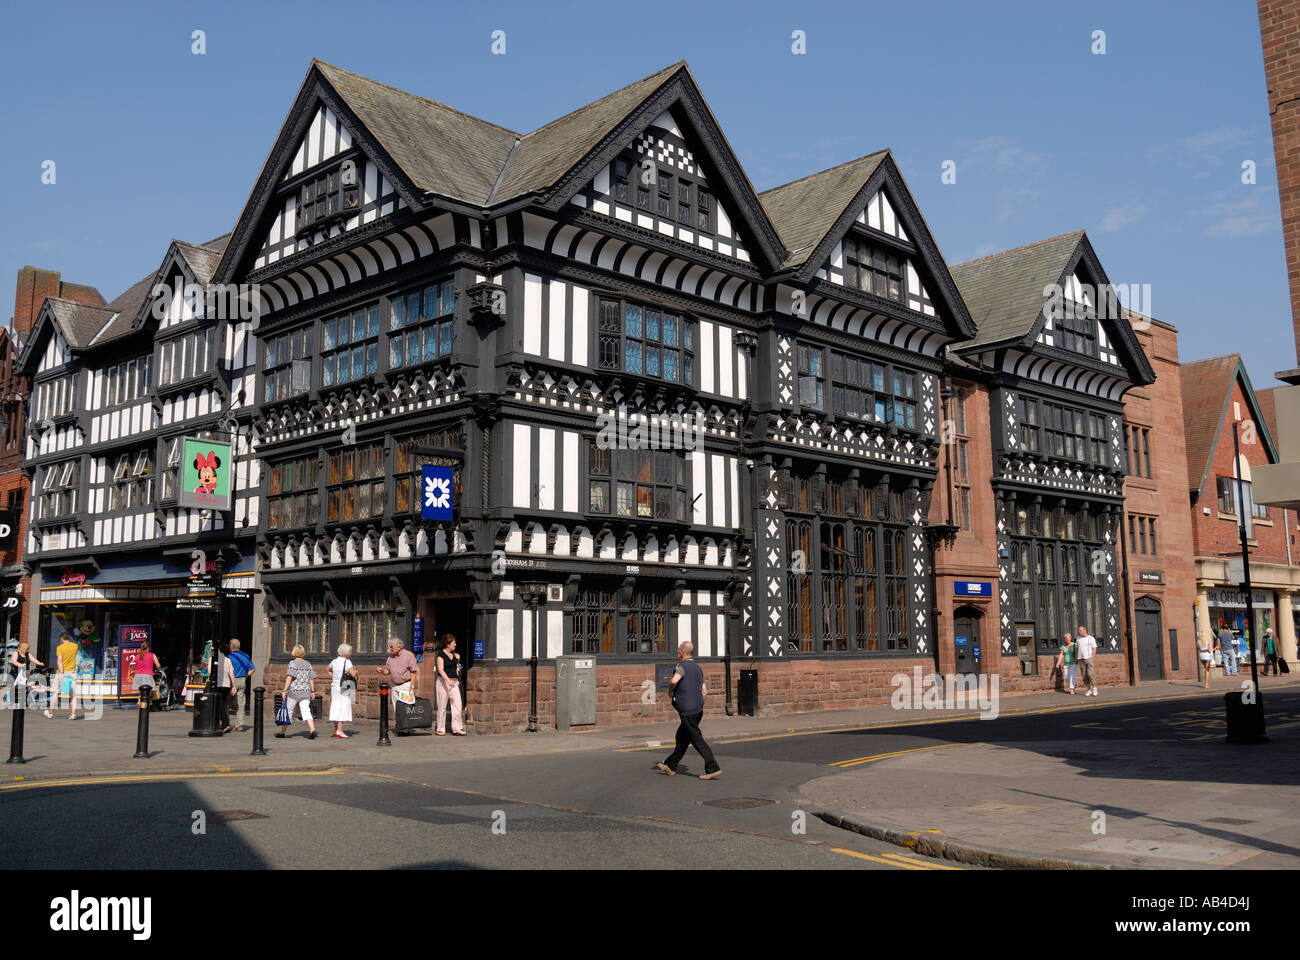 Tudor Architecture chester. tudor black and white half timbered tudor buildings at